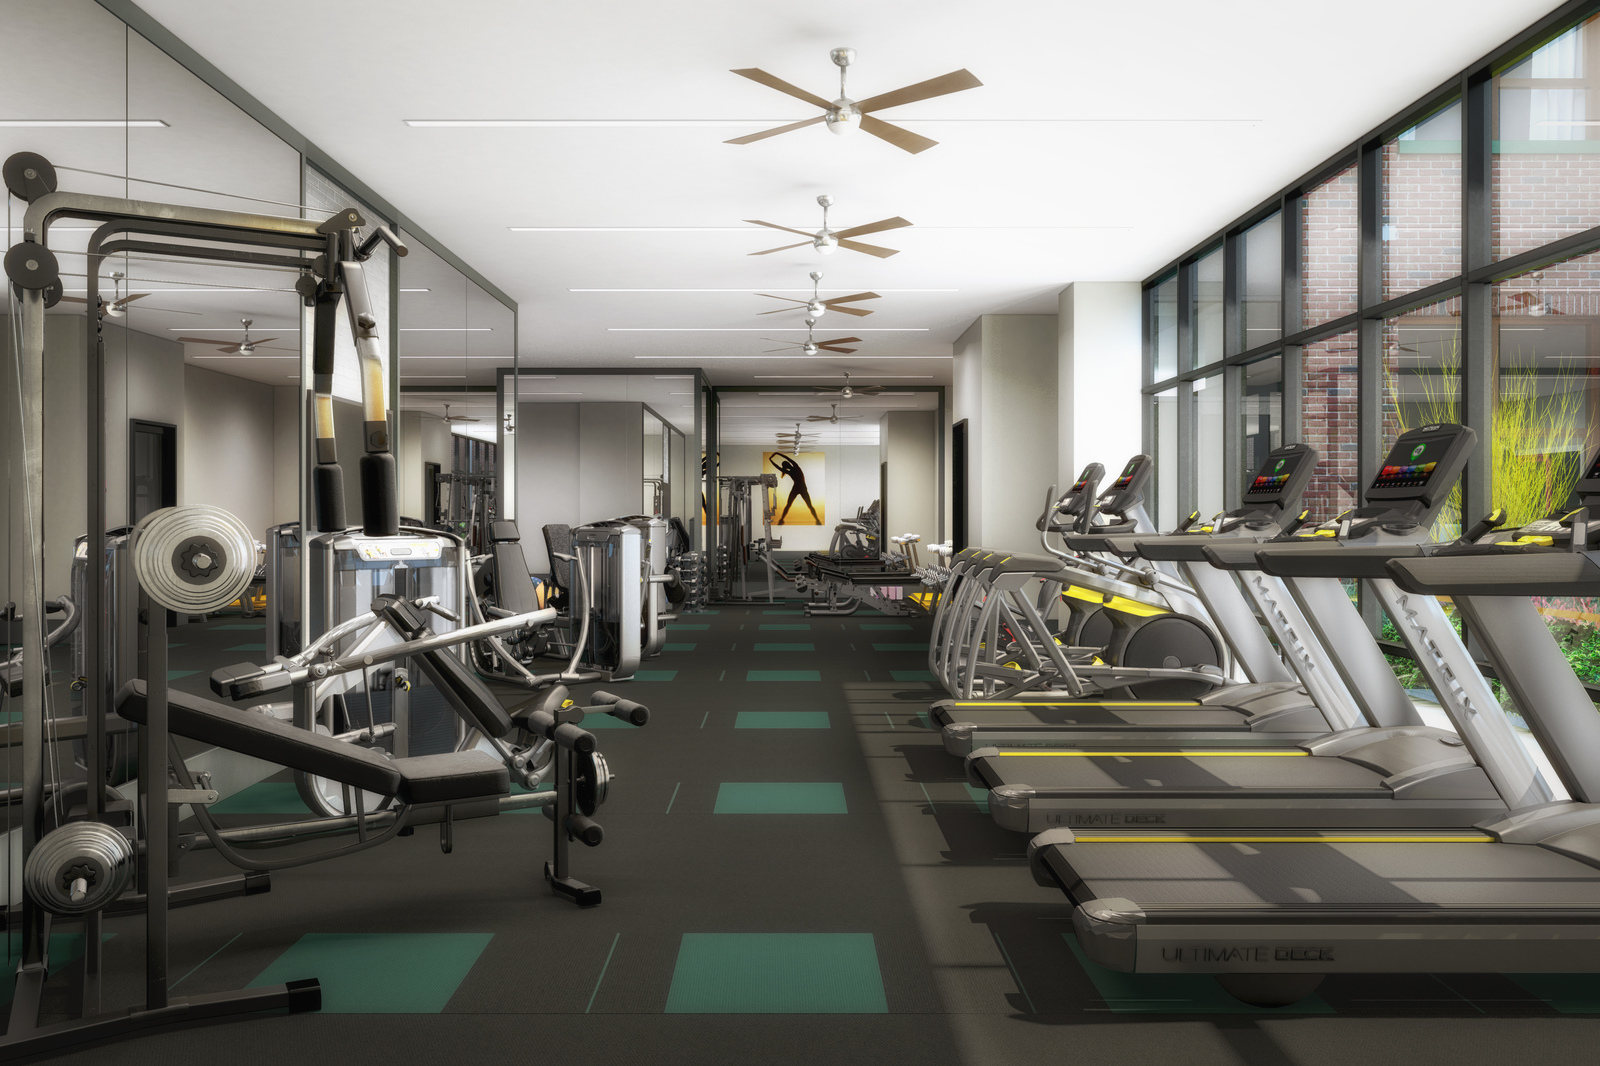 With ample room for cardio, strength training, or yoga, residents will love the energizing design of our fitness center.